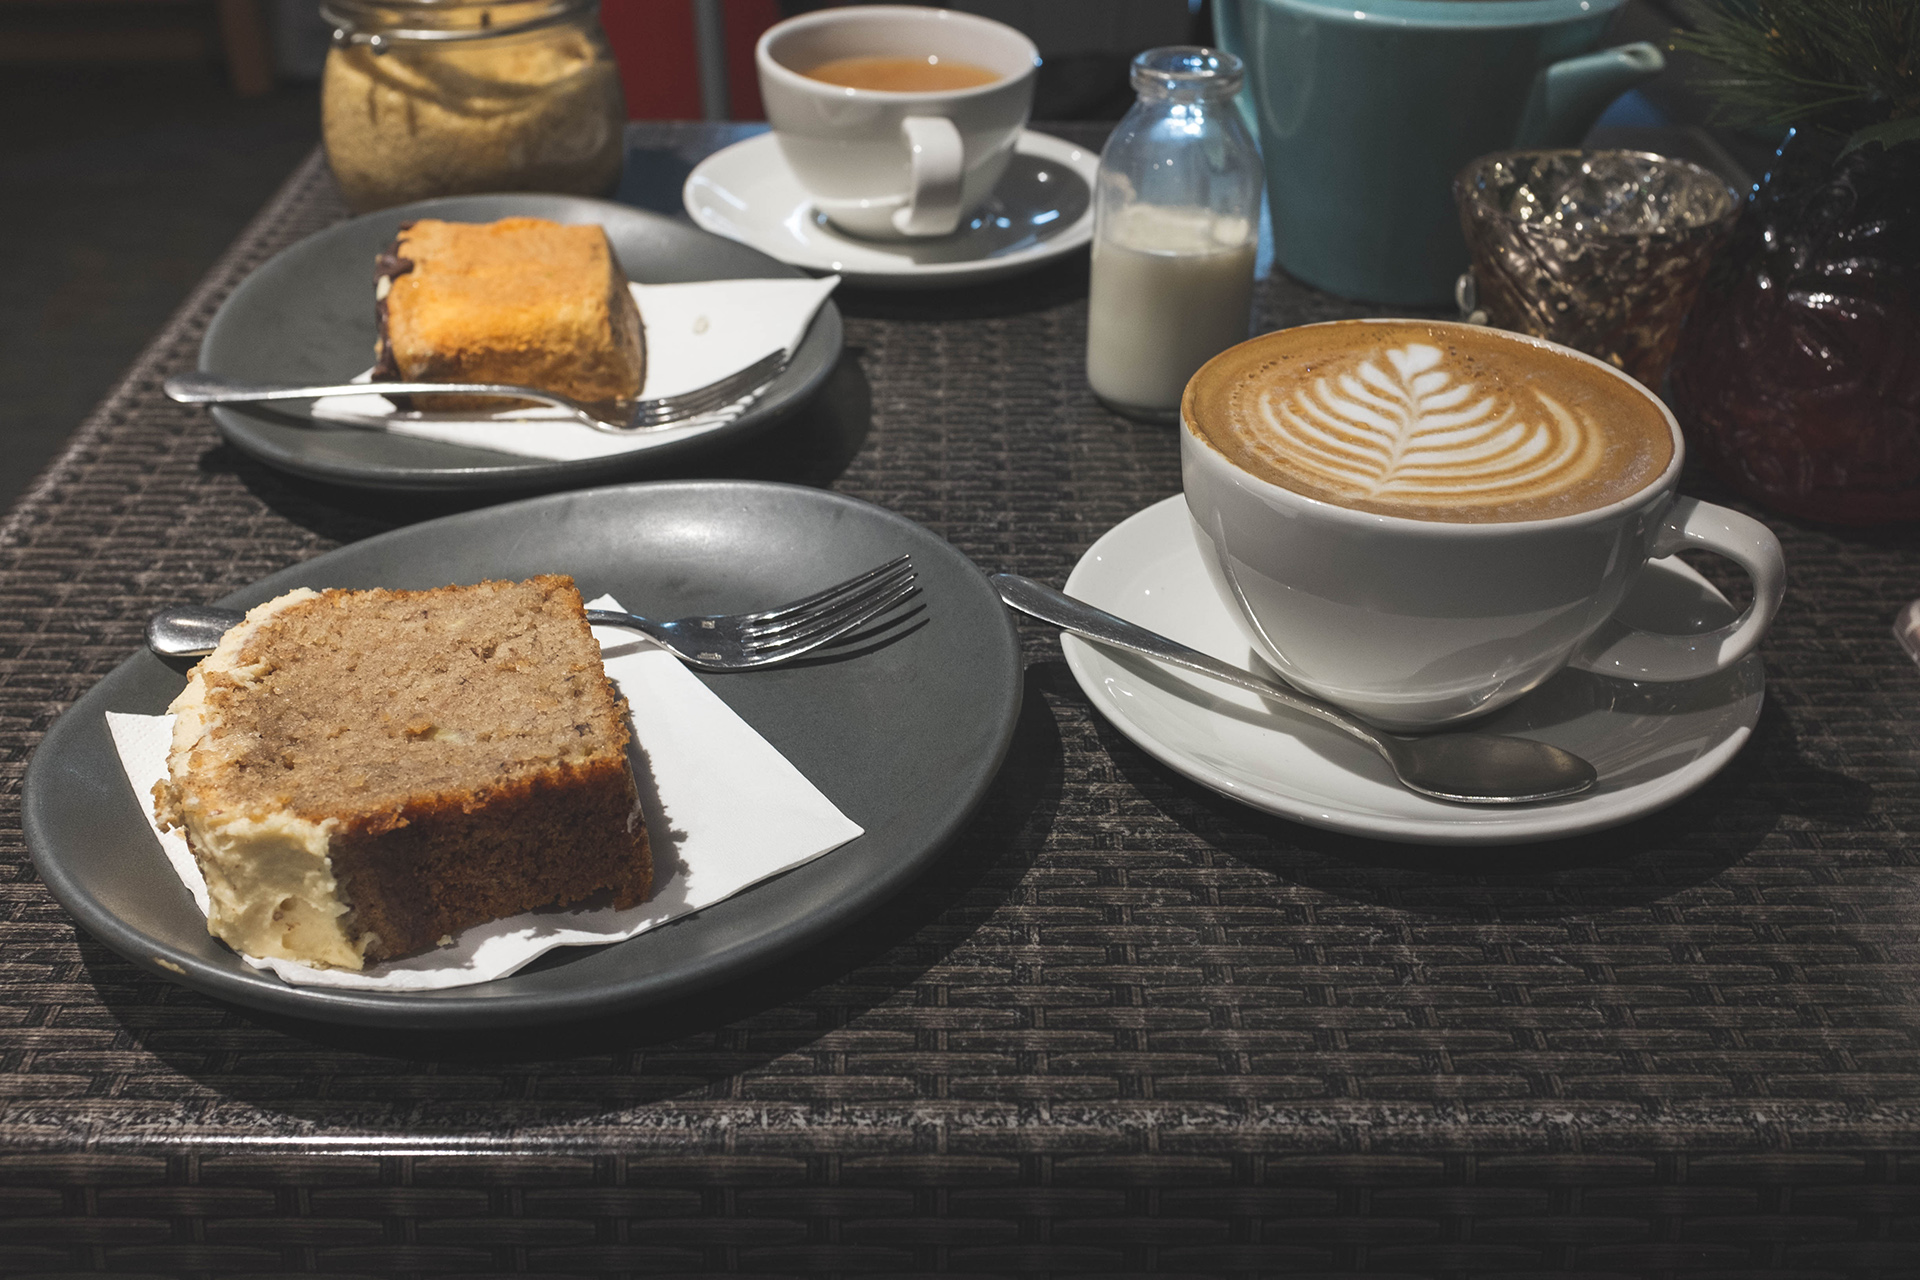 gordon street coffee latte cake